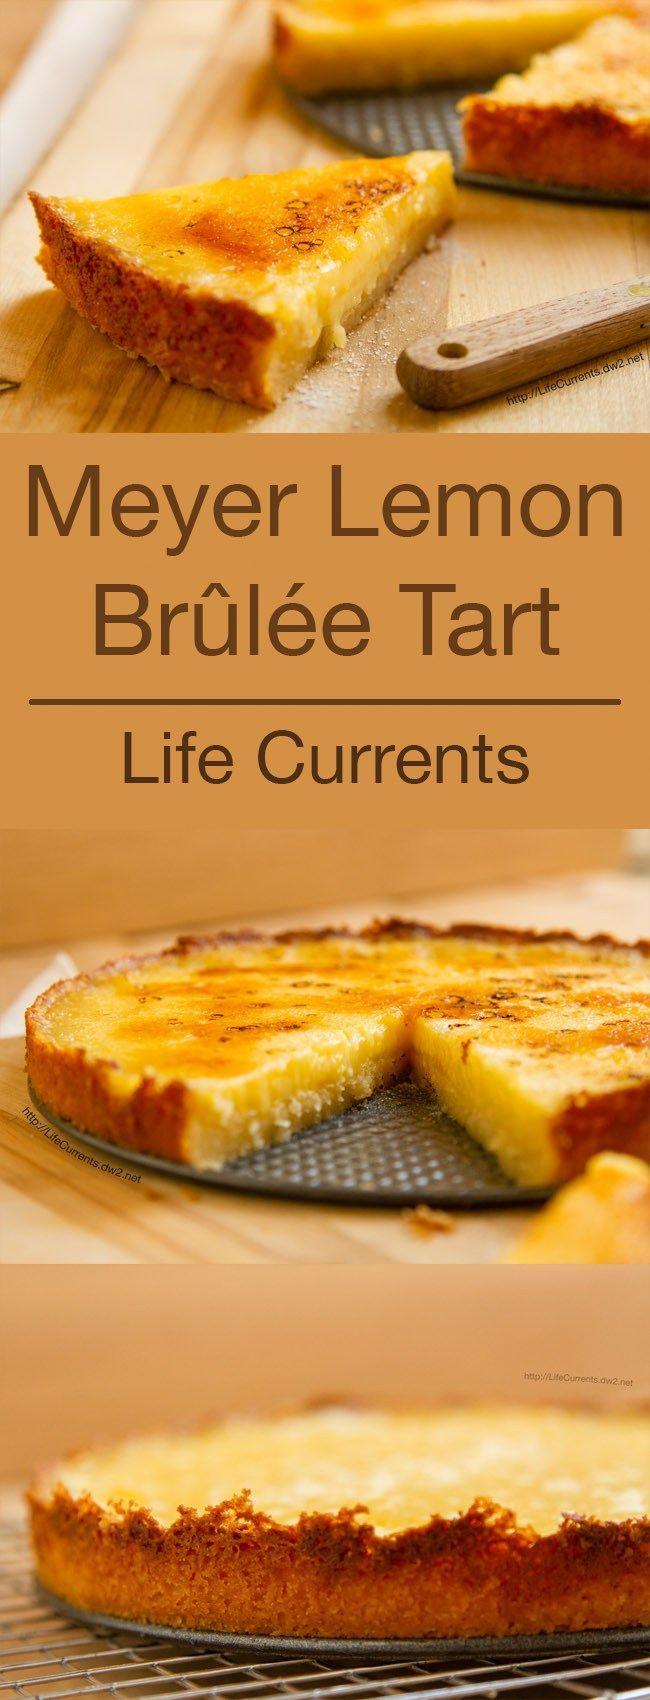 Meyer Lemon Brûlée Tart - Life Currents